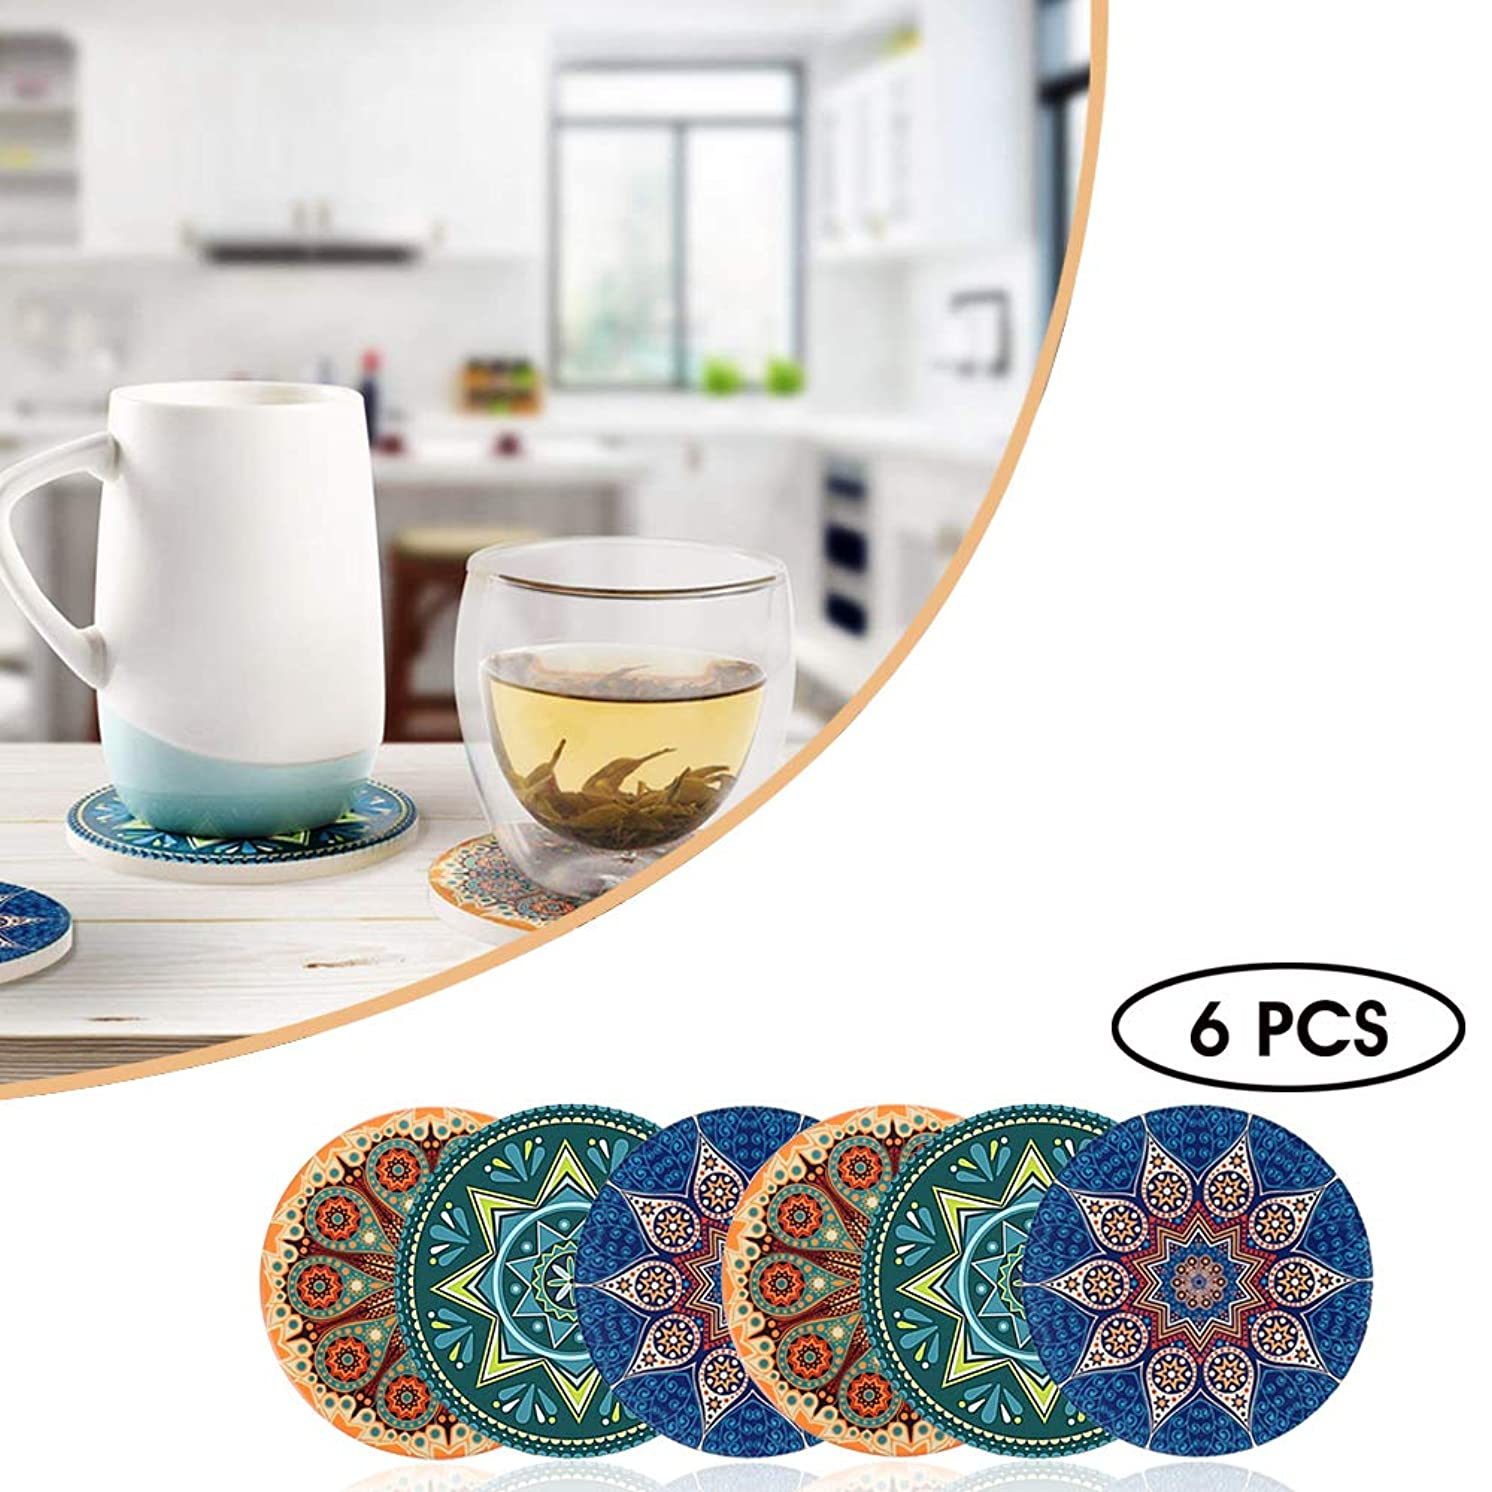 KingLeChange Coasters for Drinks Absorbent Ceremic Stone, Cork Round Base Large Size (4.3 inches) Suitable for Kinds of Mugs and Cups, Set of 6